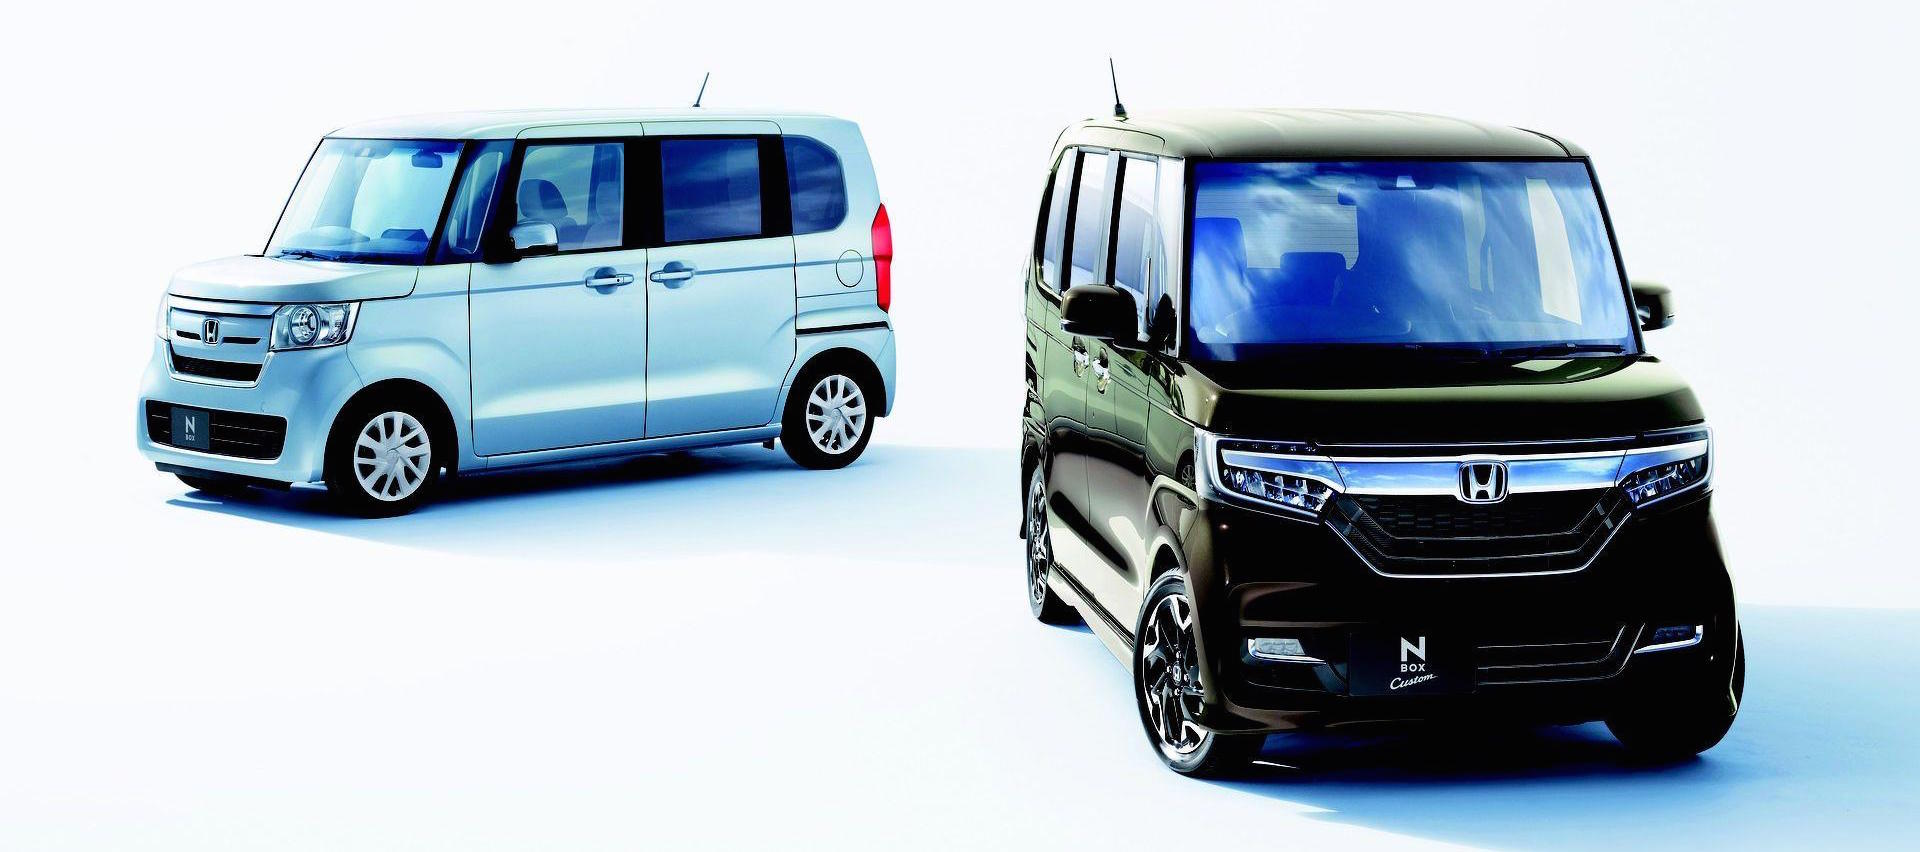 All-New Honda N-Box Kei Car Revealed, Targets 15K Units In Japan